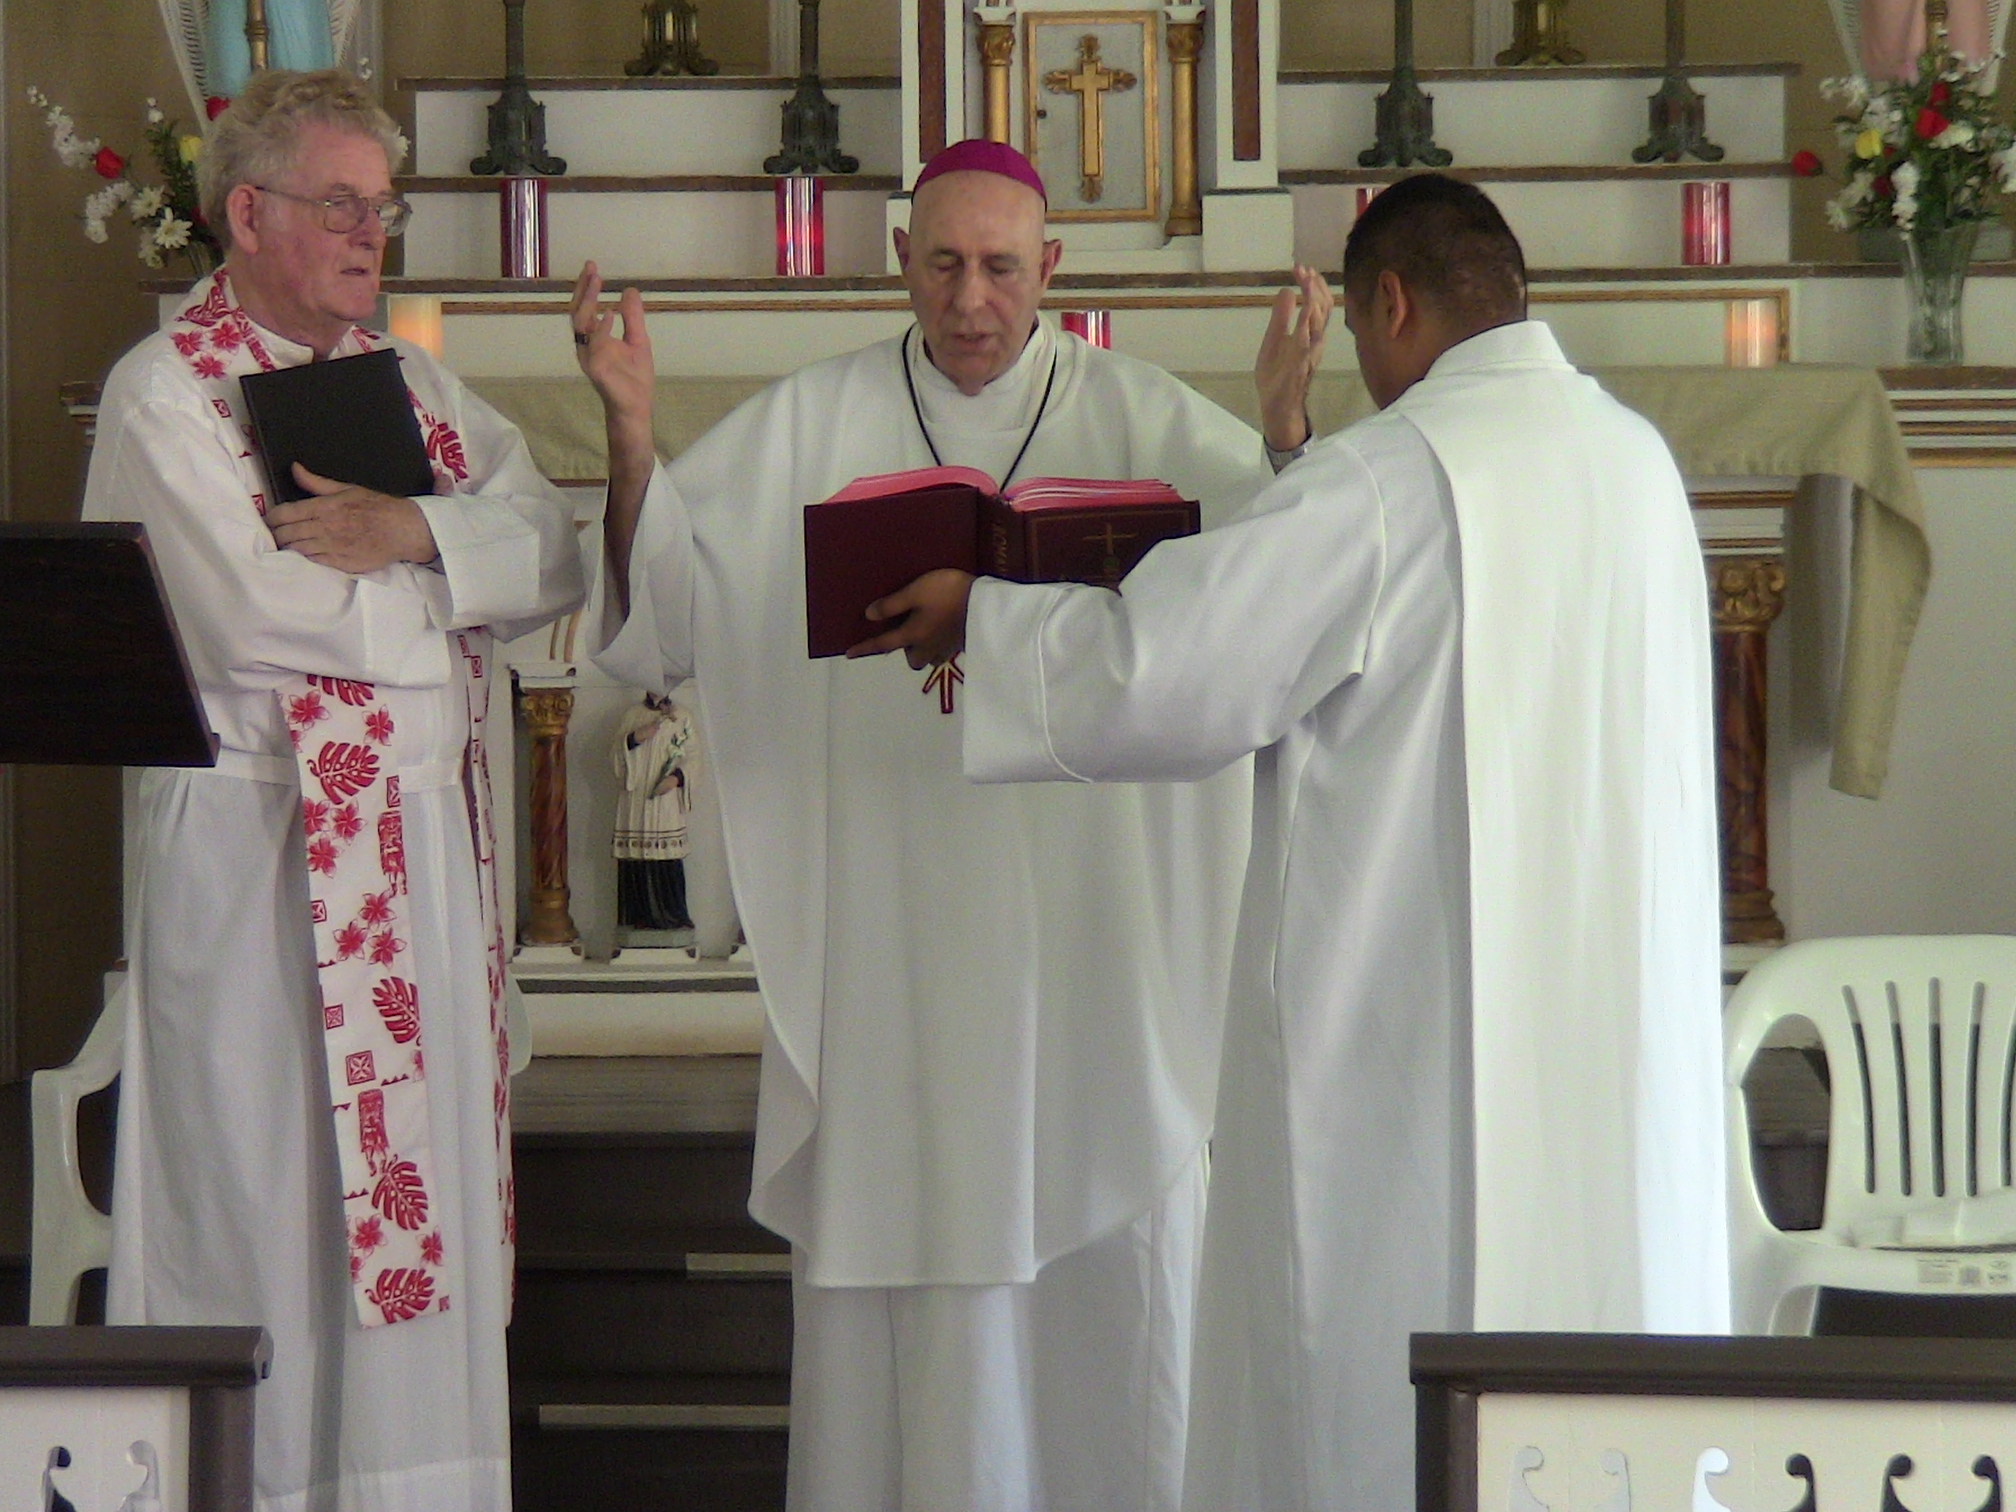 Father Patrick Killilea (left) was installed on July 11 as the new pastor of Kalaupapa's St. Francis Church by Honolulu Bishop Larry Silva (center). Photo by Mark Miller.